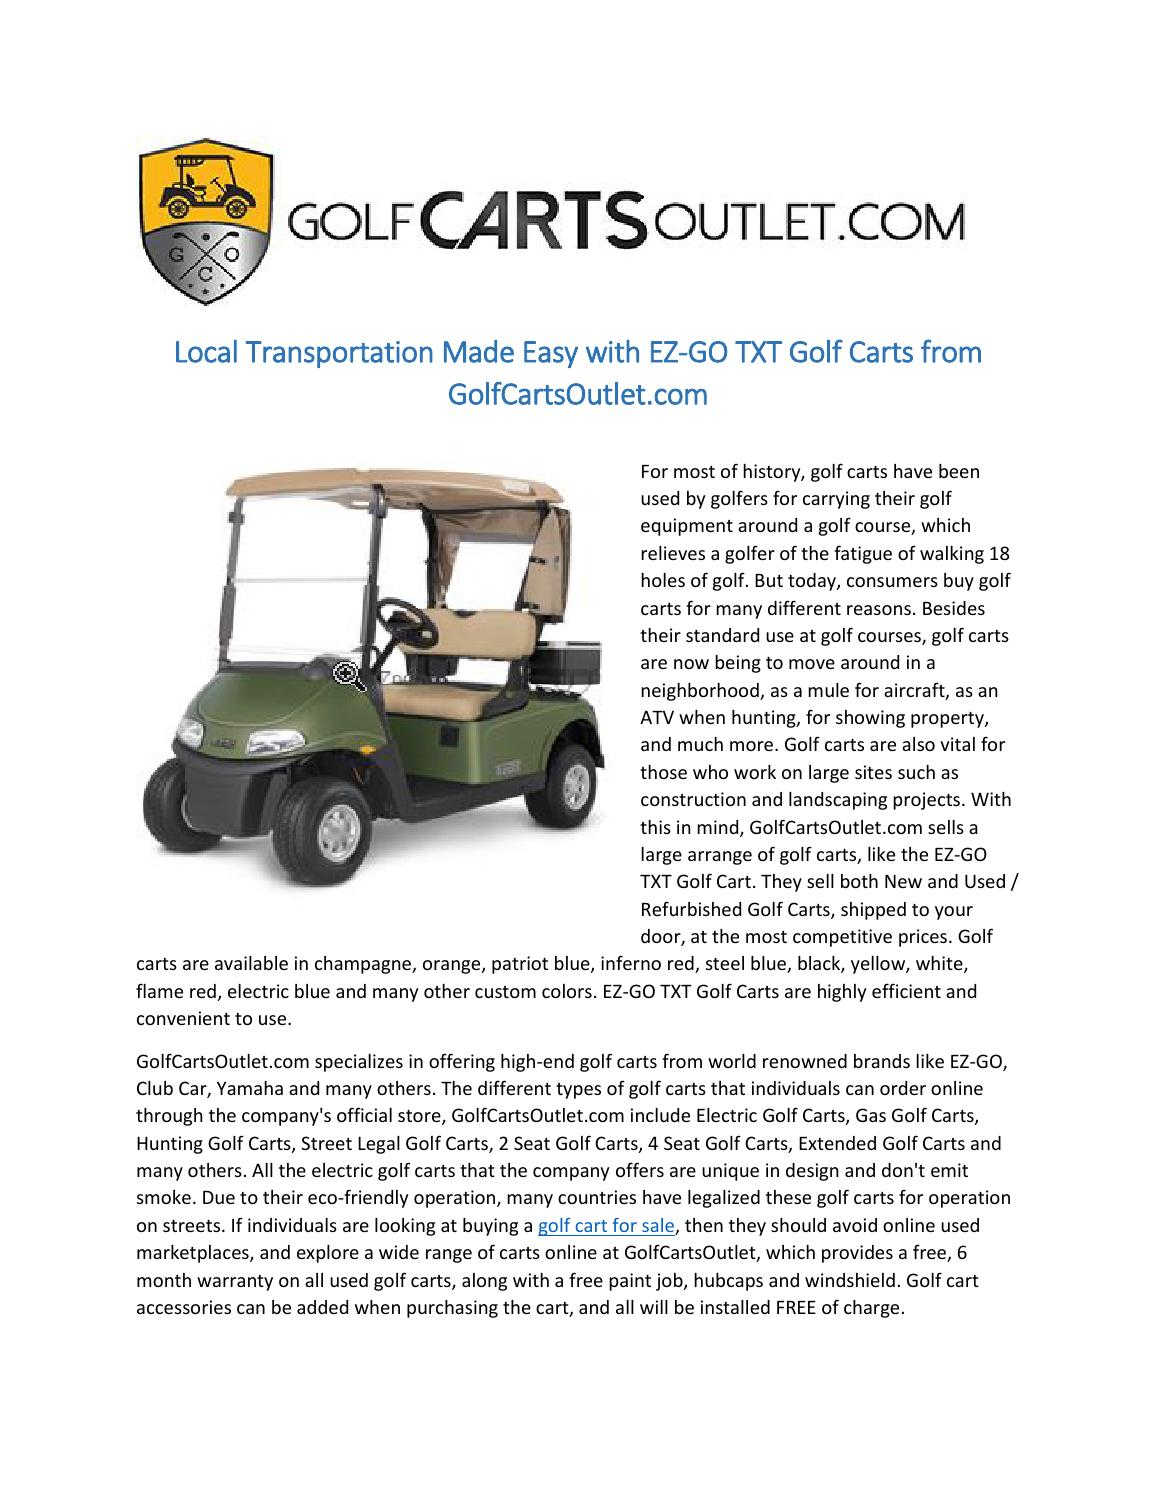 Local transportation made easy with ez go txt golf carts from ... on camper doors, fleetwood doors, grill doors, toy hauler doors, pool doors, eagle doors, quad doors, polaris doors, bus doors,